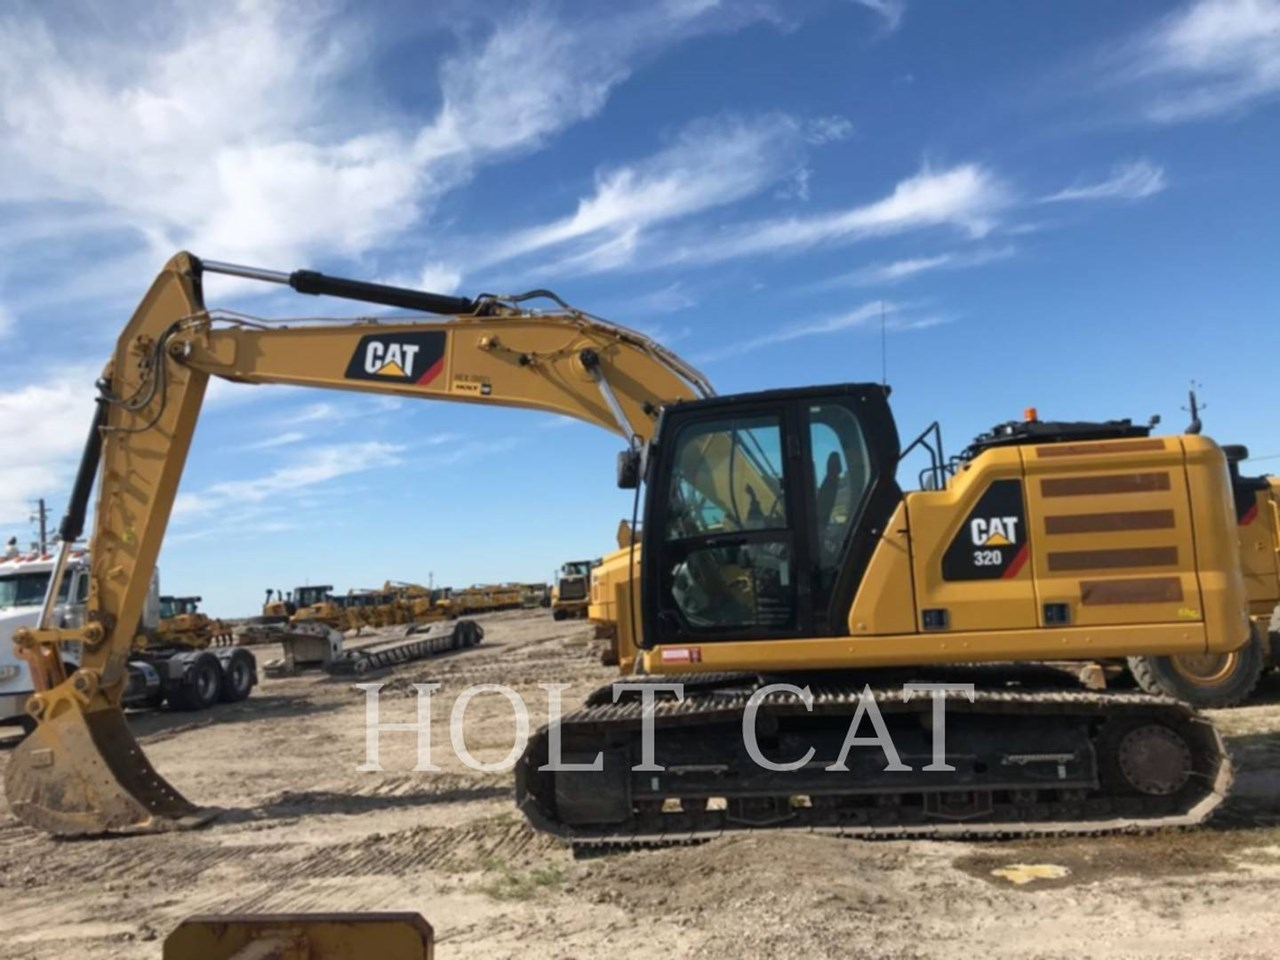 2019 Caterpillar 320 Image 1